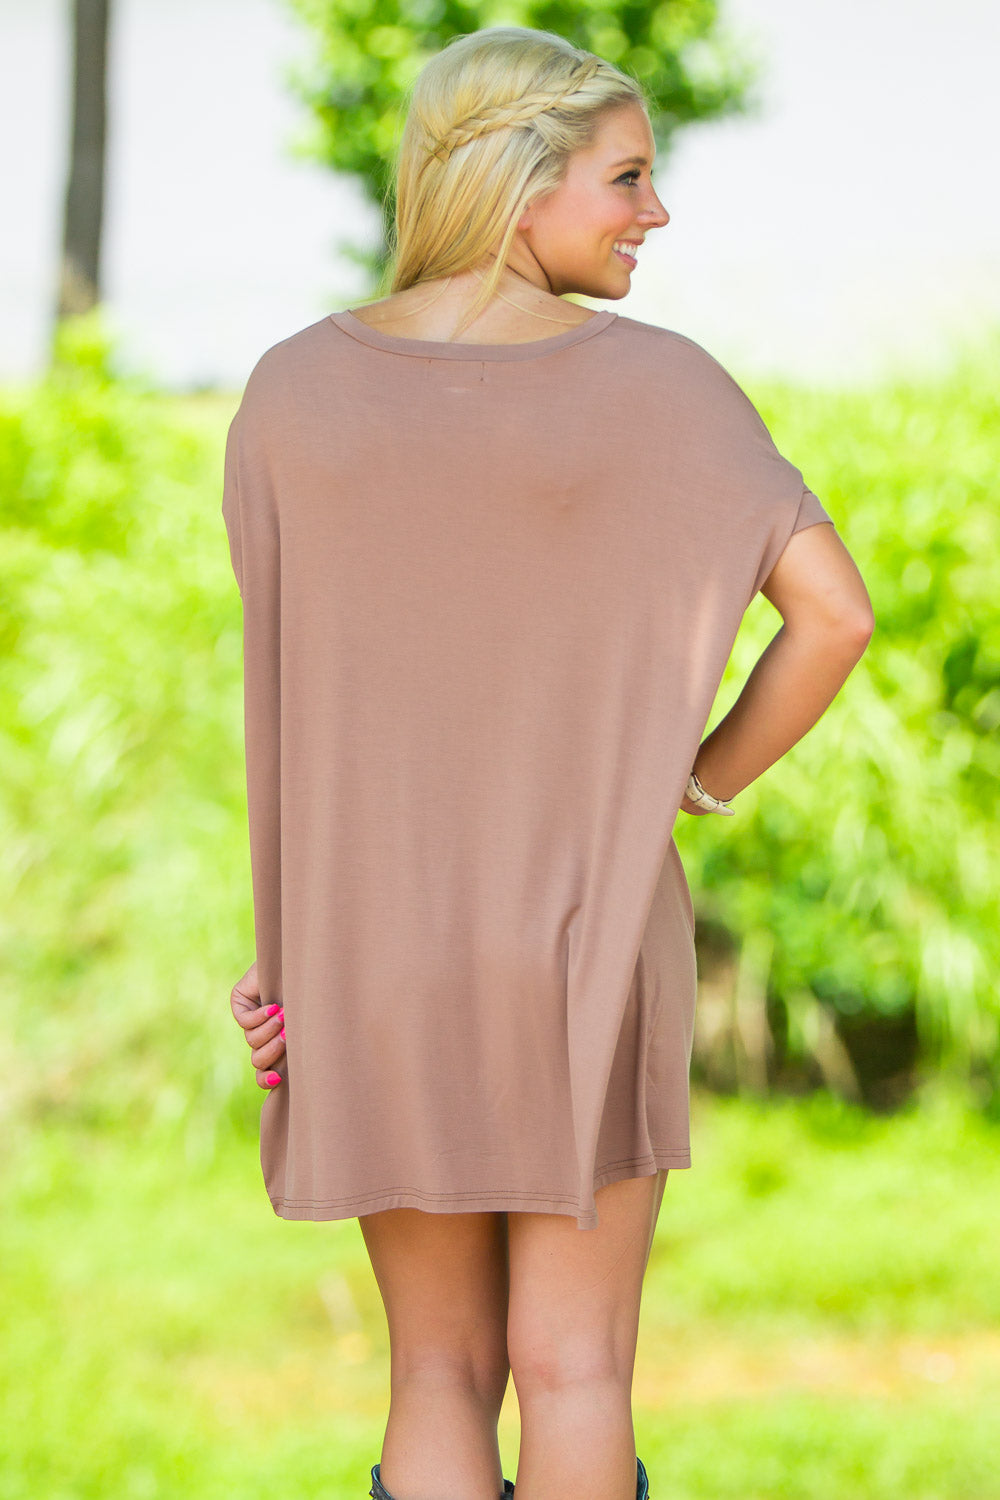 Short Sleeve V-Neck Piko Tunic - Mocha - Piko Clothing